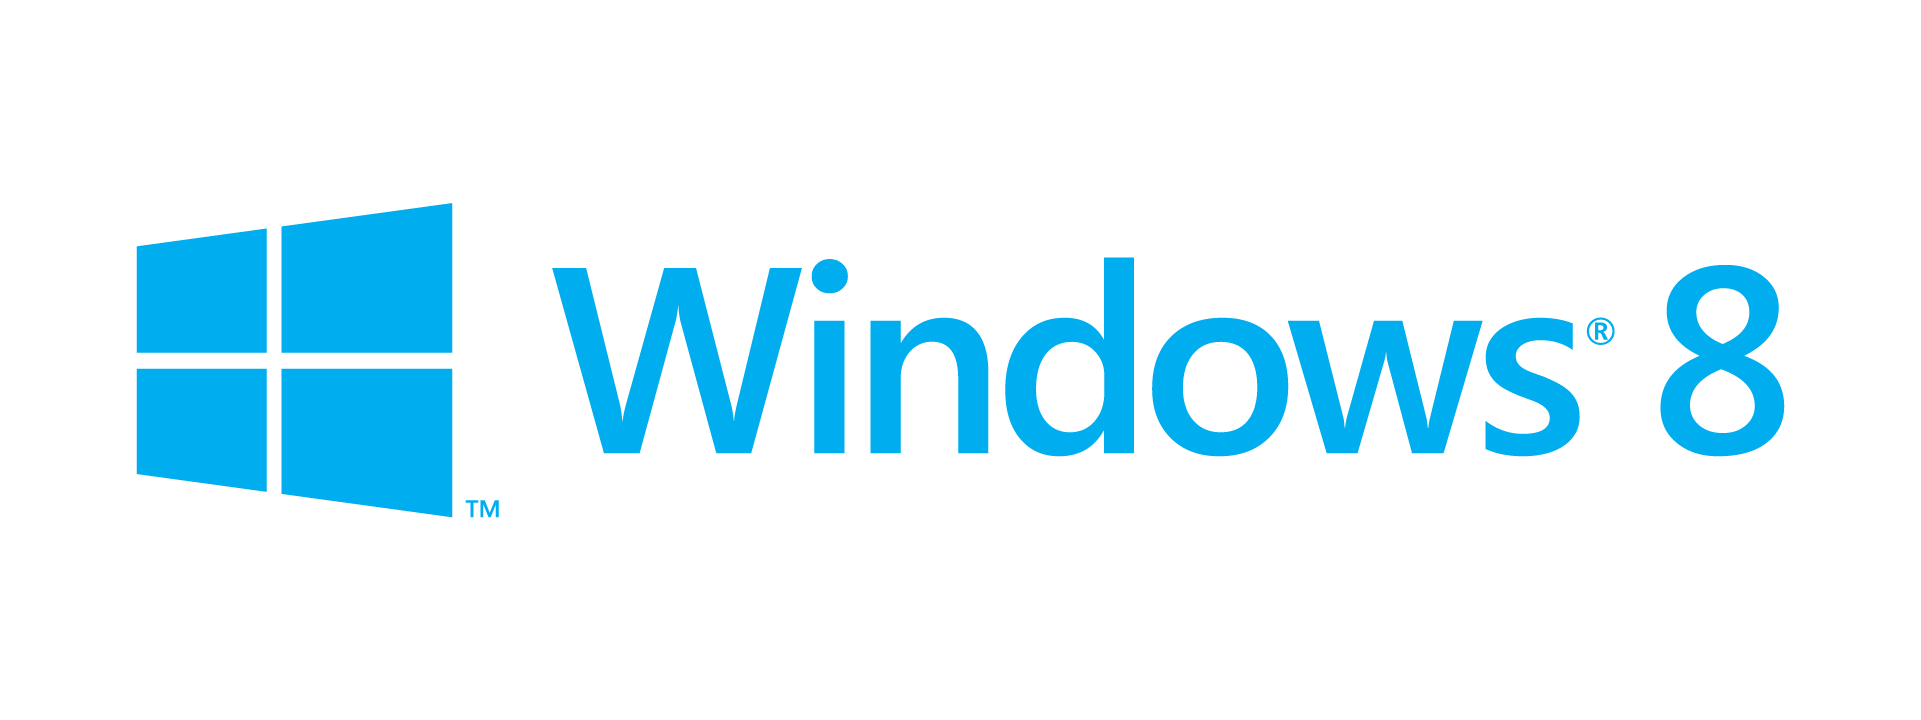 official logo of windows 8 by ockre designs interfaces logos logotypes    Official Windows 7 Logo